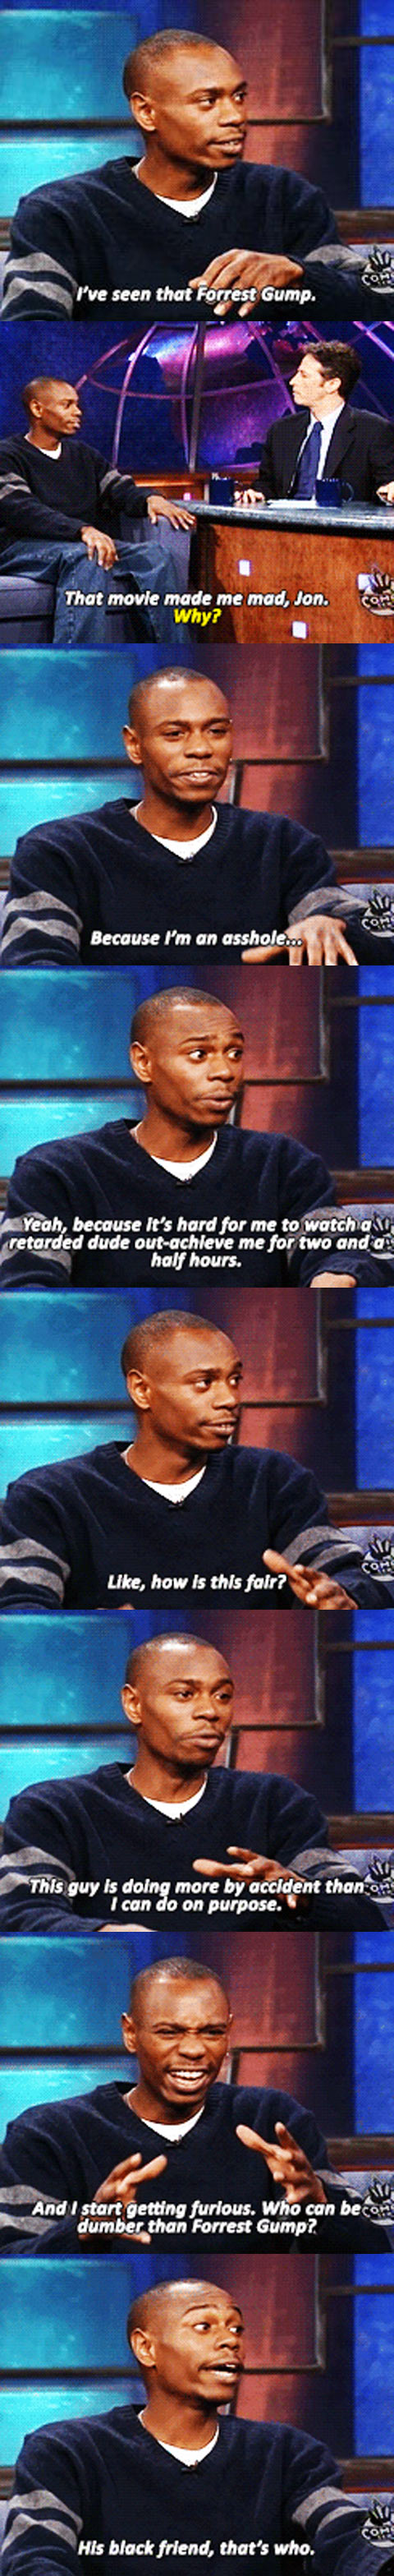 Dave Chappelle Has a Point